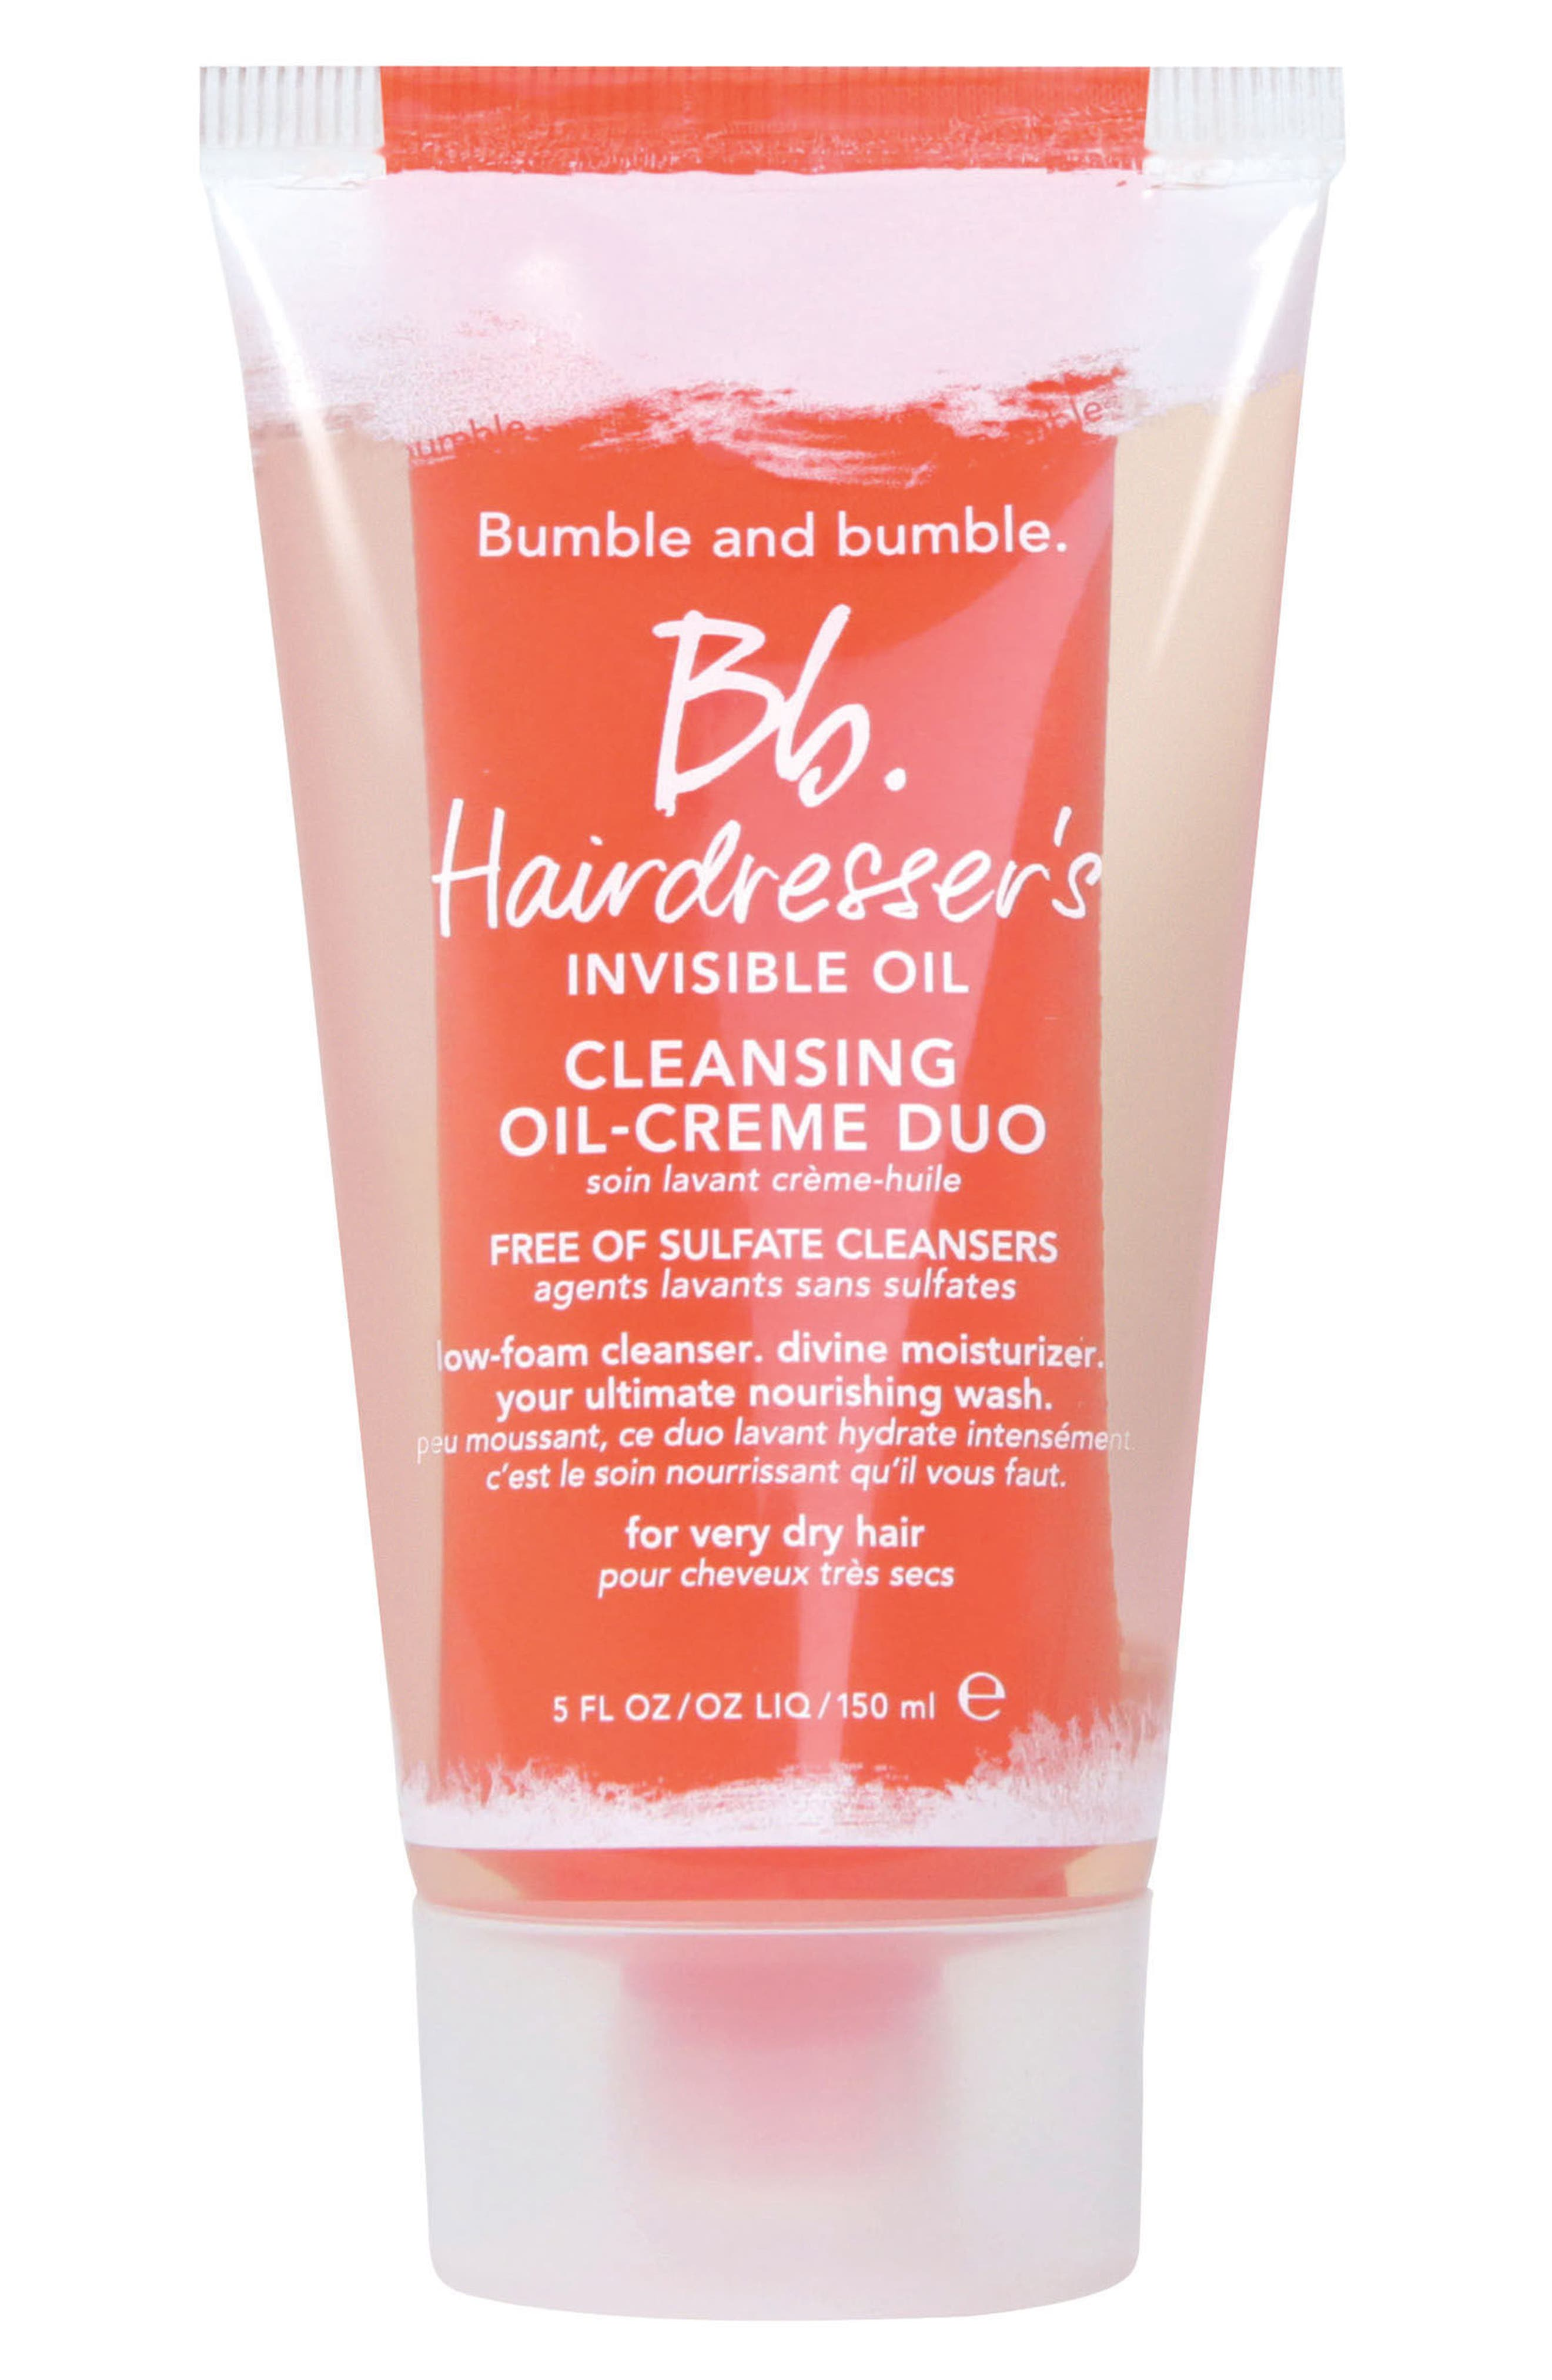 Main Image - Bumble and bumble Hairdresser's Invisible Oil Cleansing Oil-Creme Duo